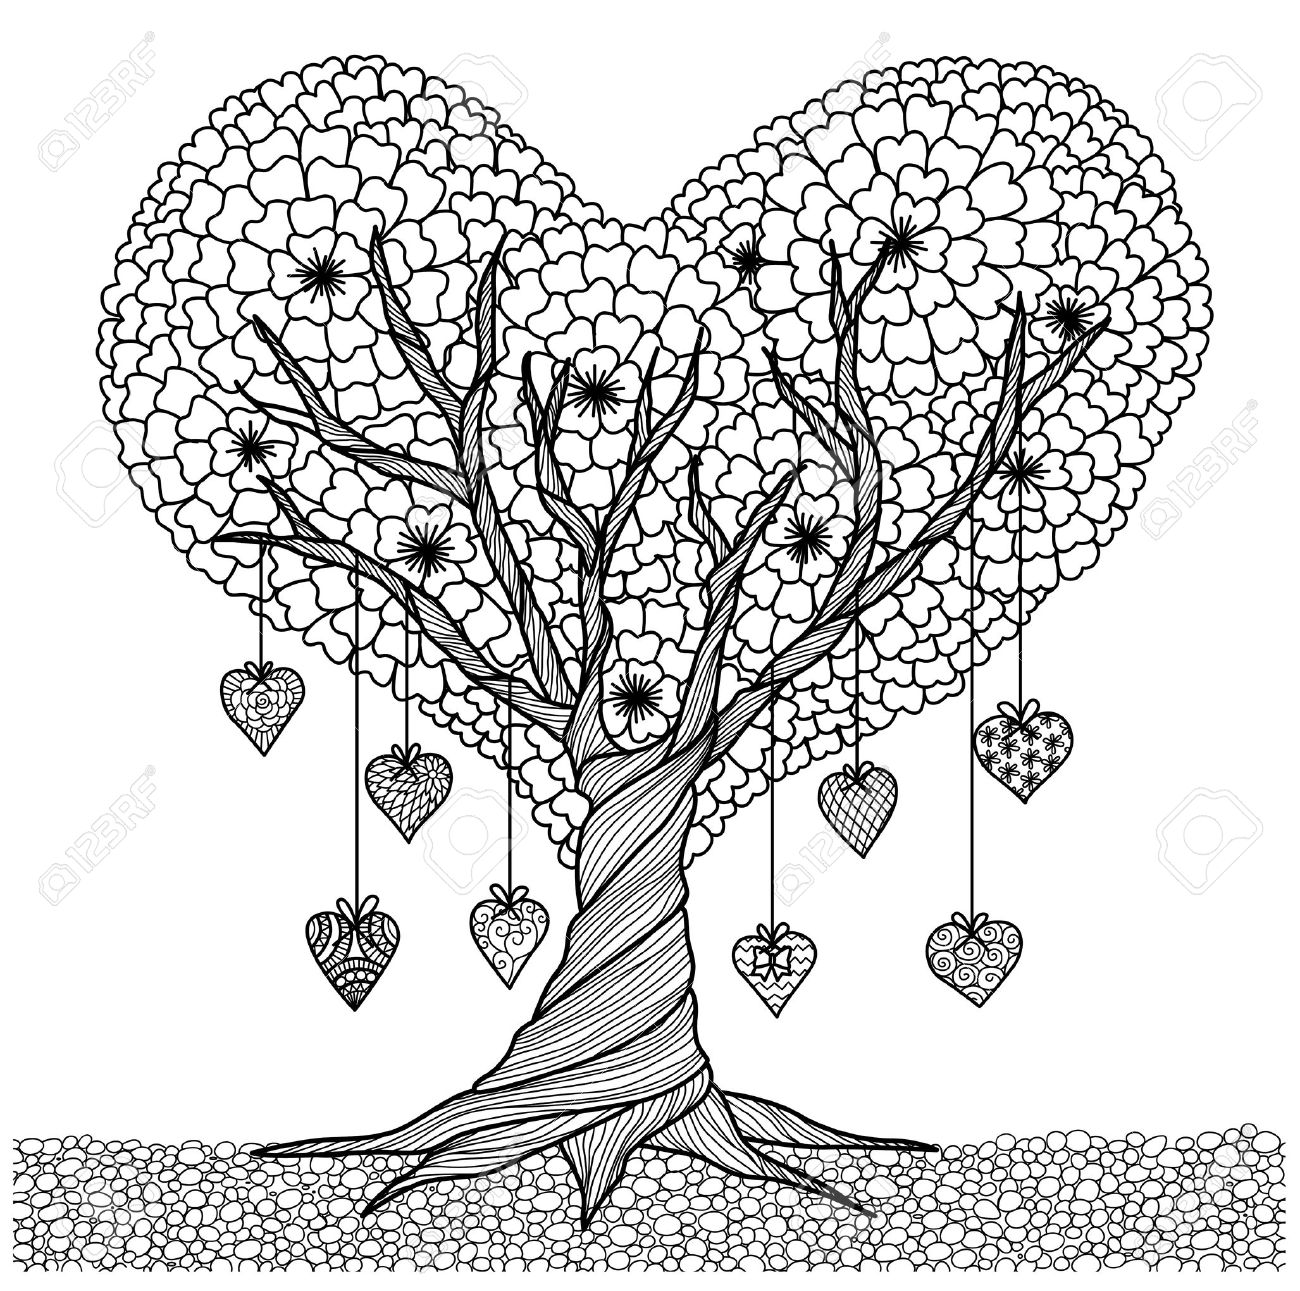 hand drawn heart shape tree for coloring book for royalty